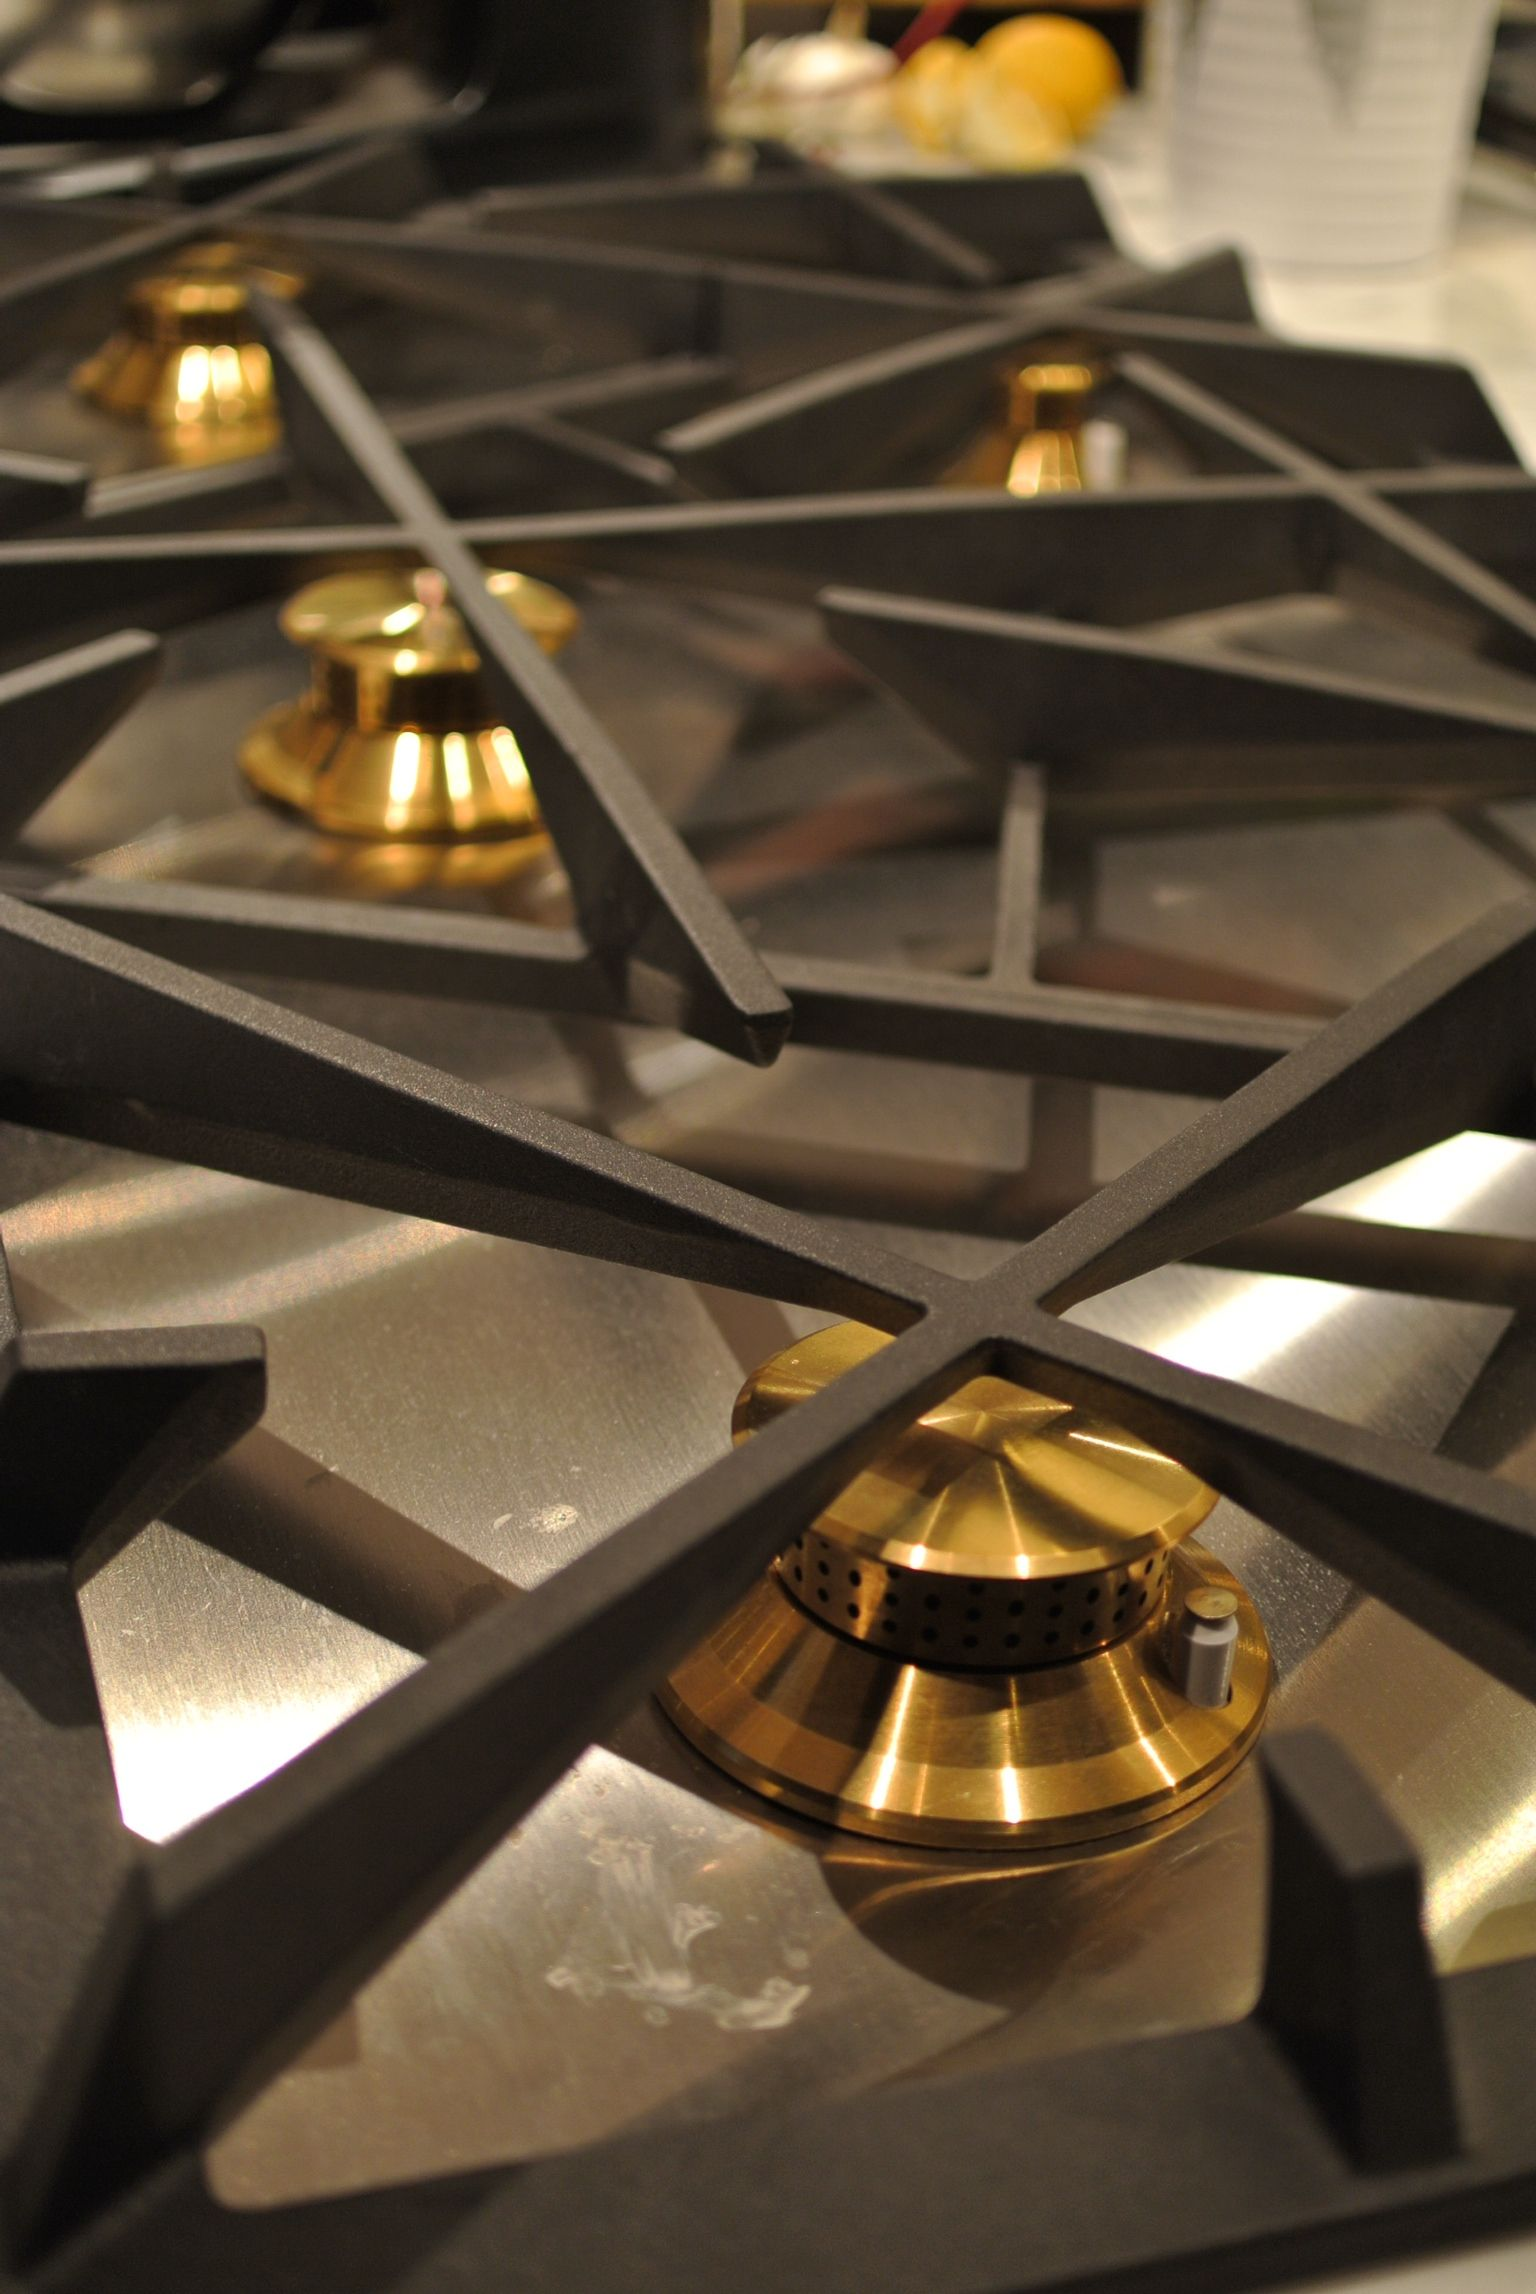 Electrolux Grand Cuisine Gas Hob Gas Hobs In 2019